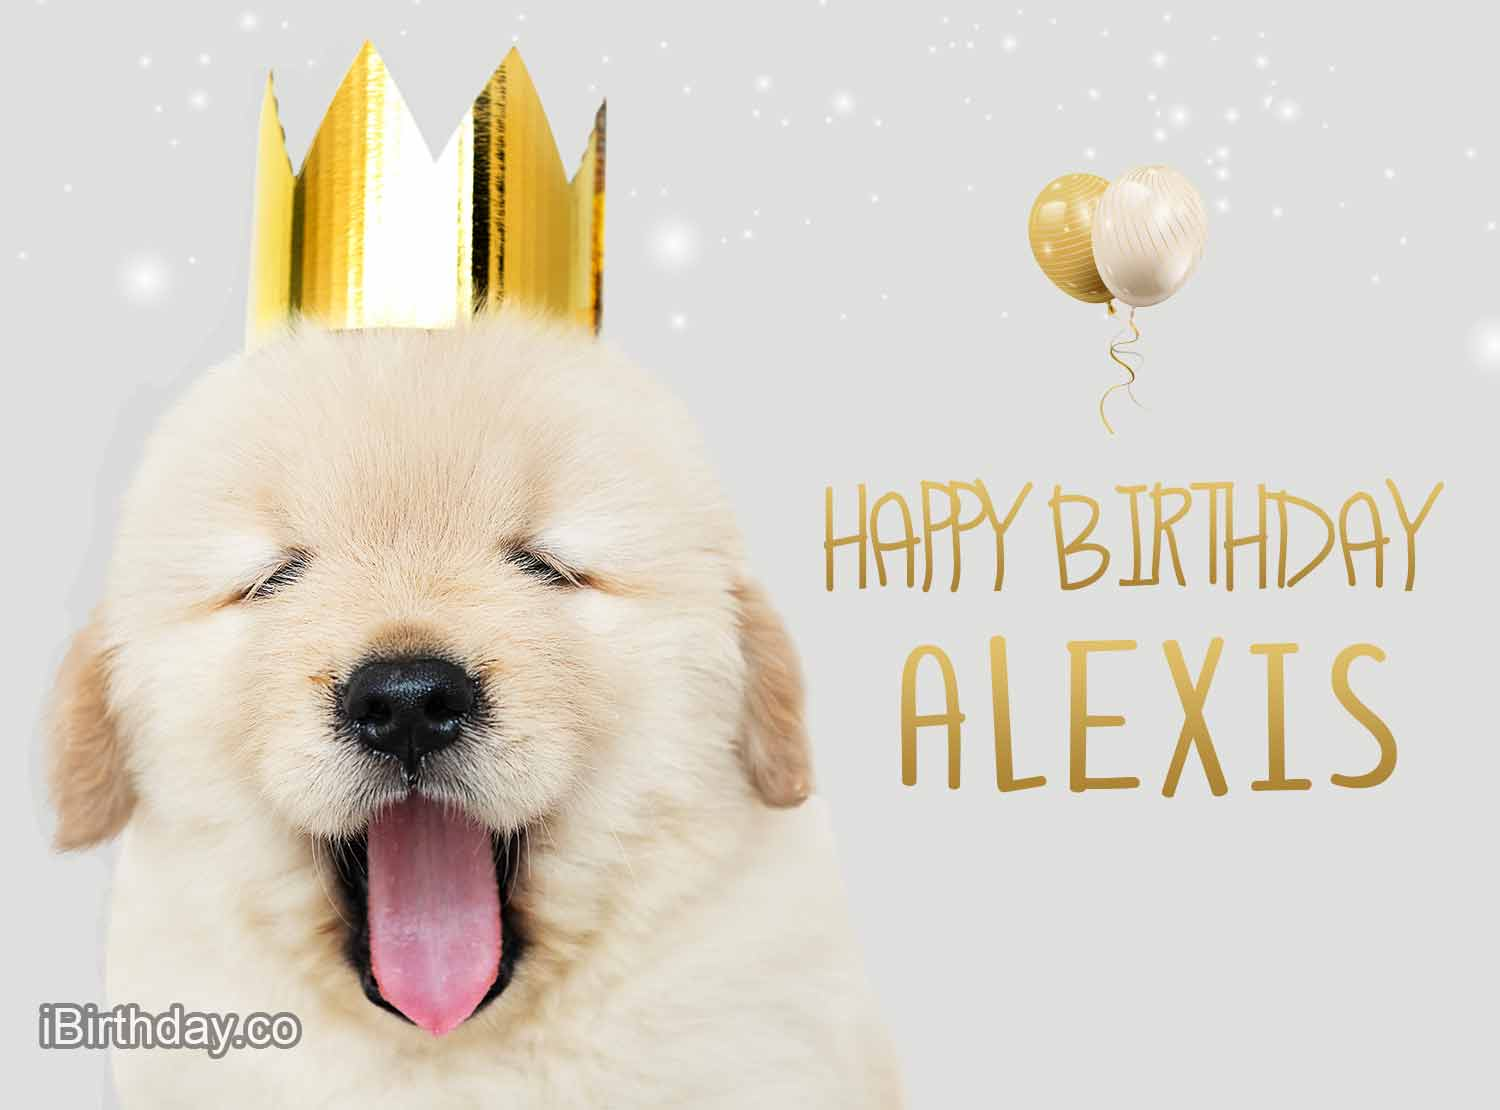 Alexis Dog with Crown Birthday Wish